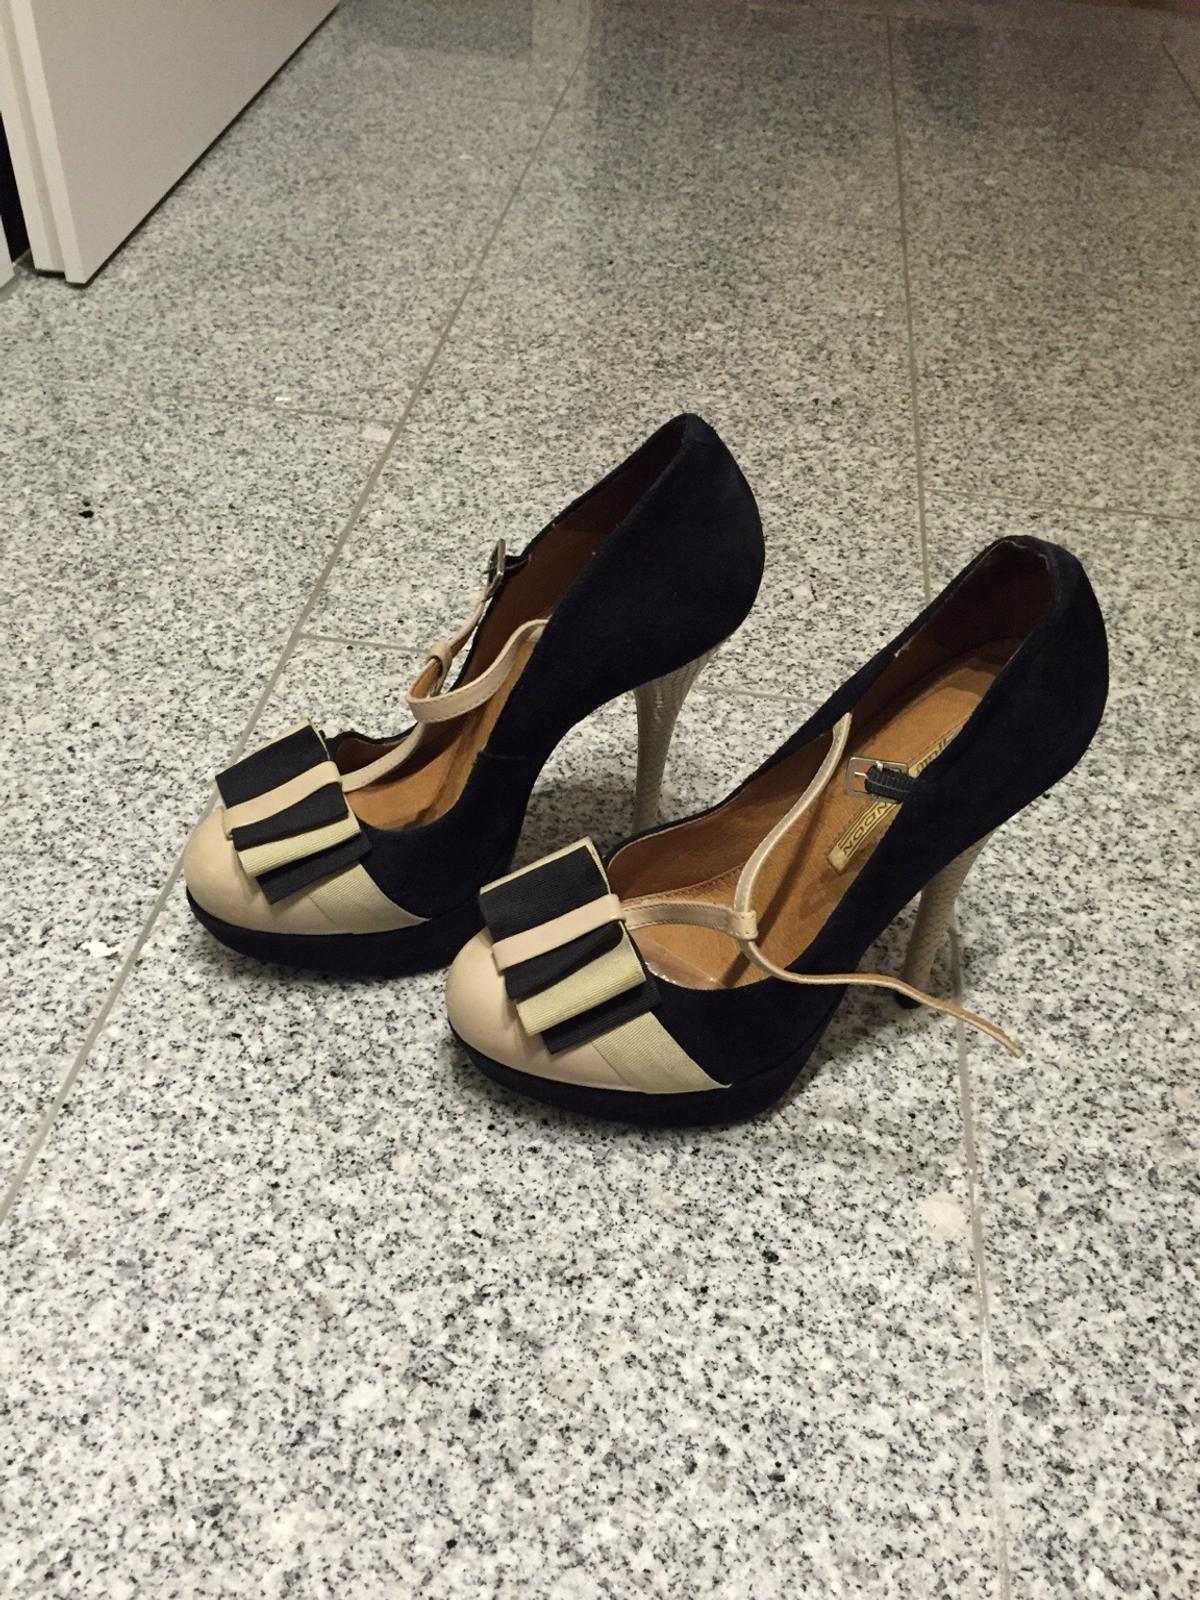 Buffalo Pumps in 81673 München for €60.00 for sale | Shpock